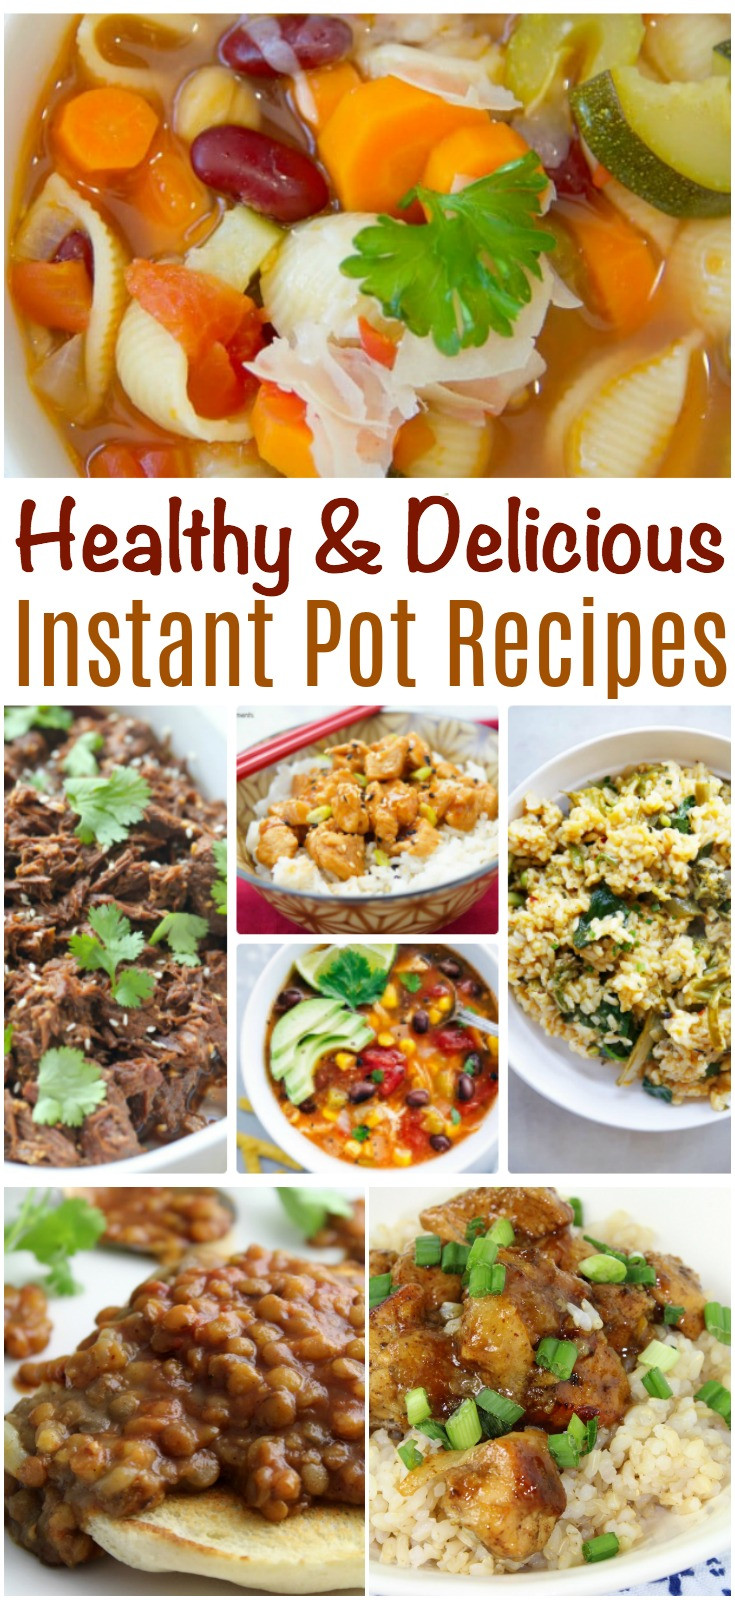 Healthy Recipes For Instant Pot  Healthy and Delicious Instant Pot Recipes